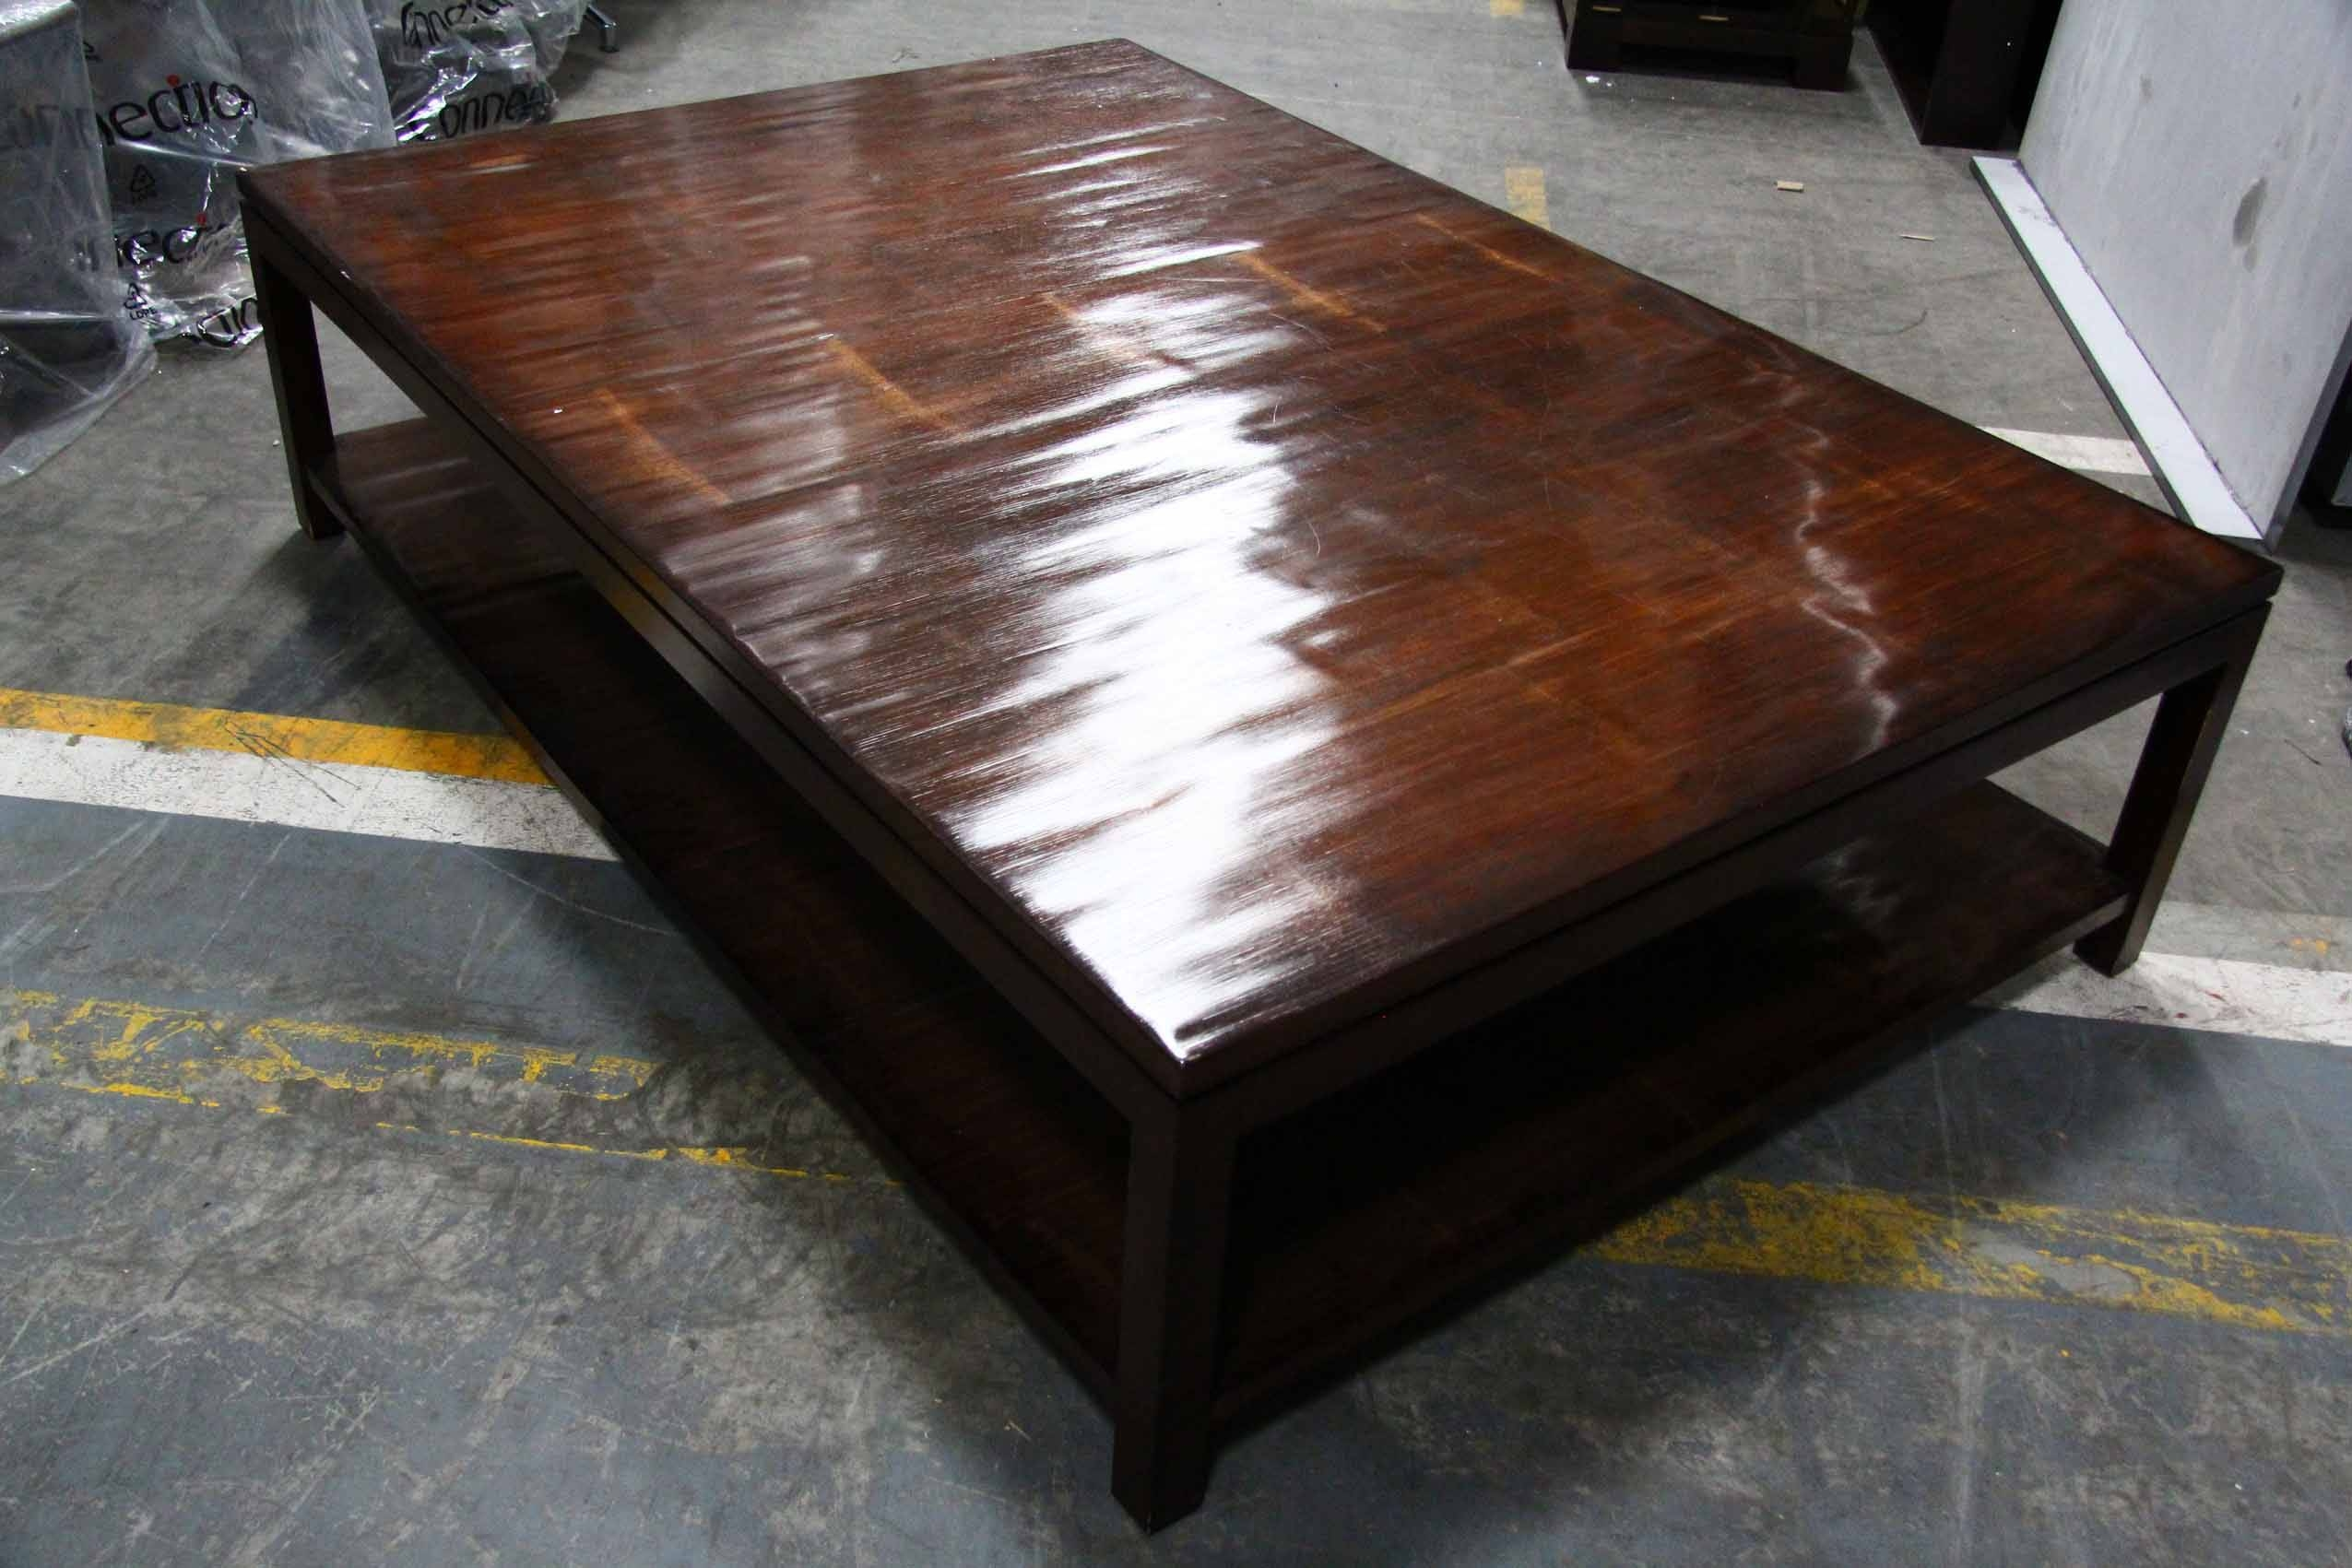 Dark Wood Coffee Table. Dark Wood Coffee Table Ebay Design Dark inside Dark Wood Coffee Table Storages (Image 19 of 30)